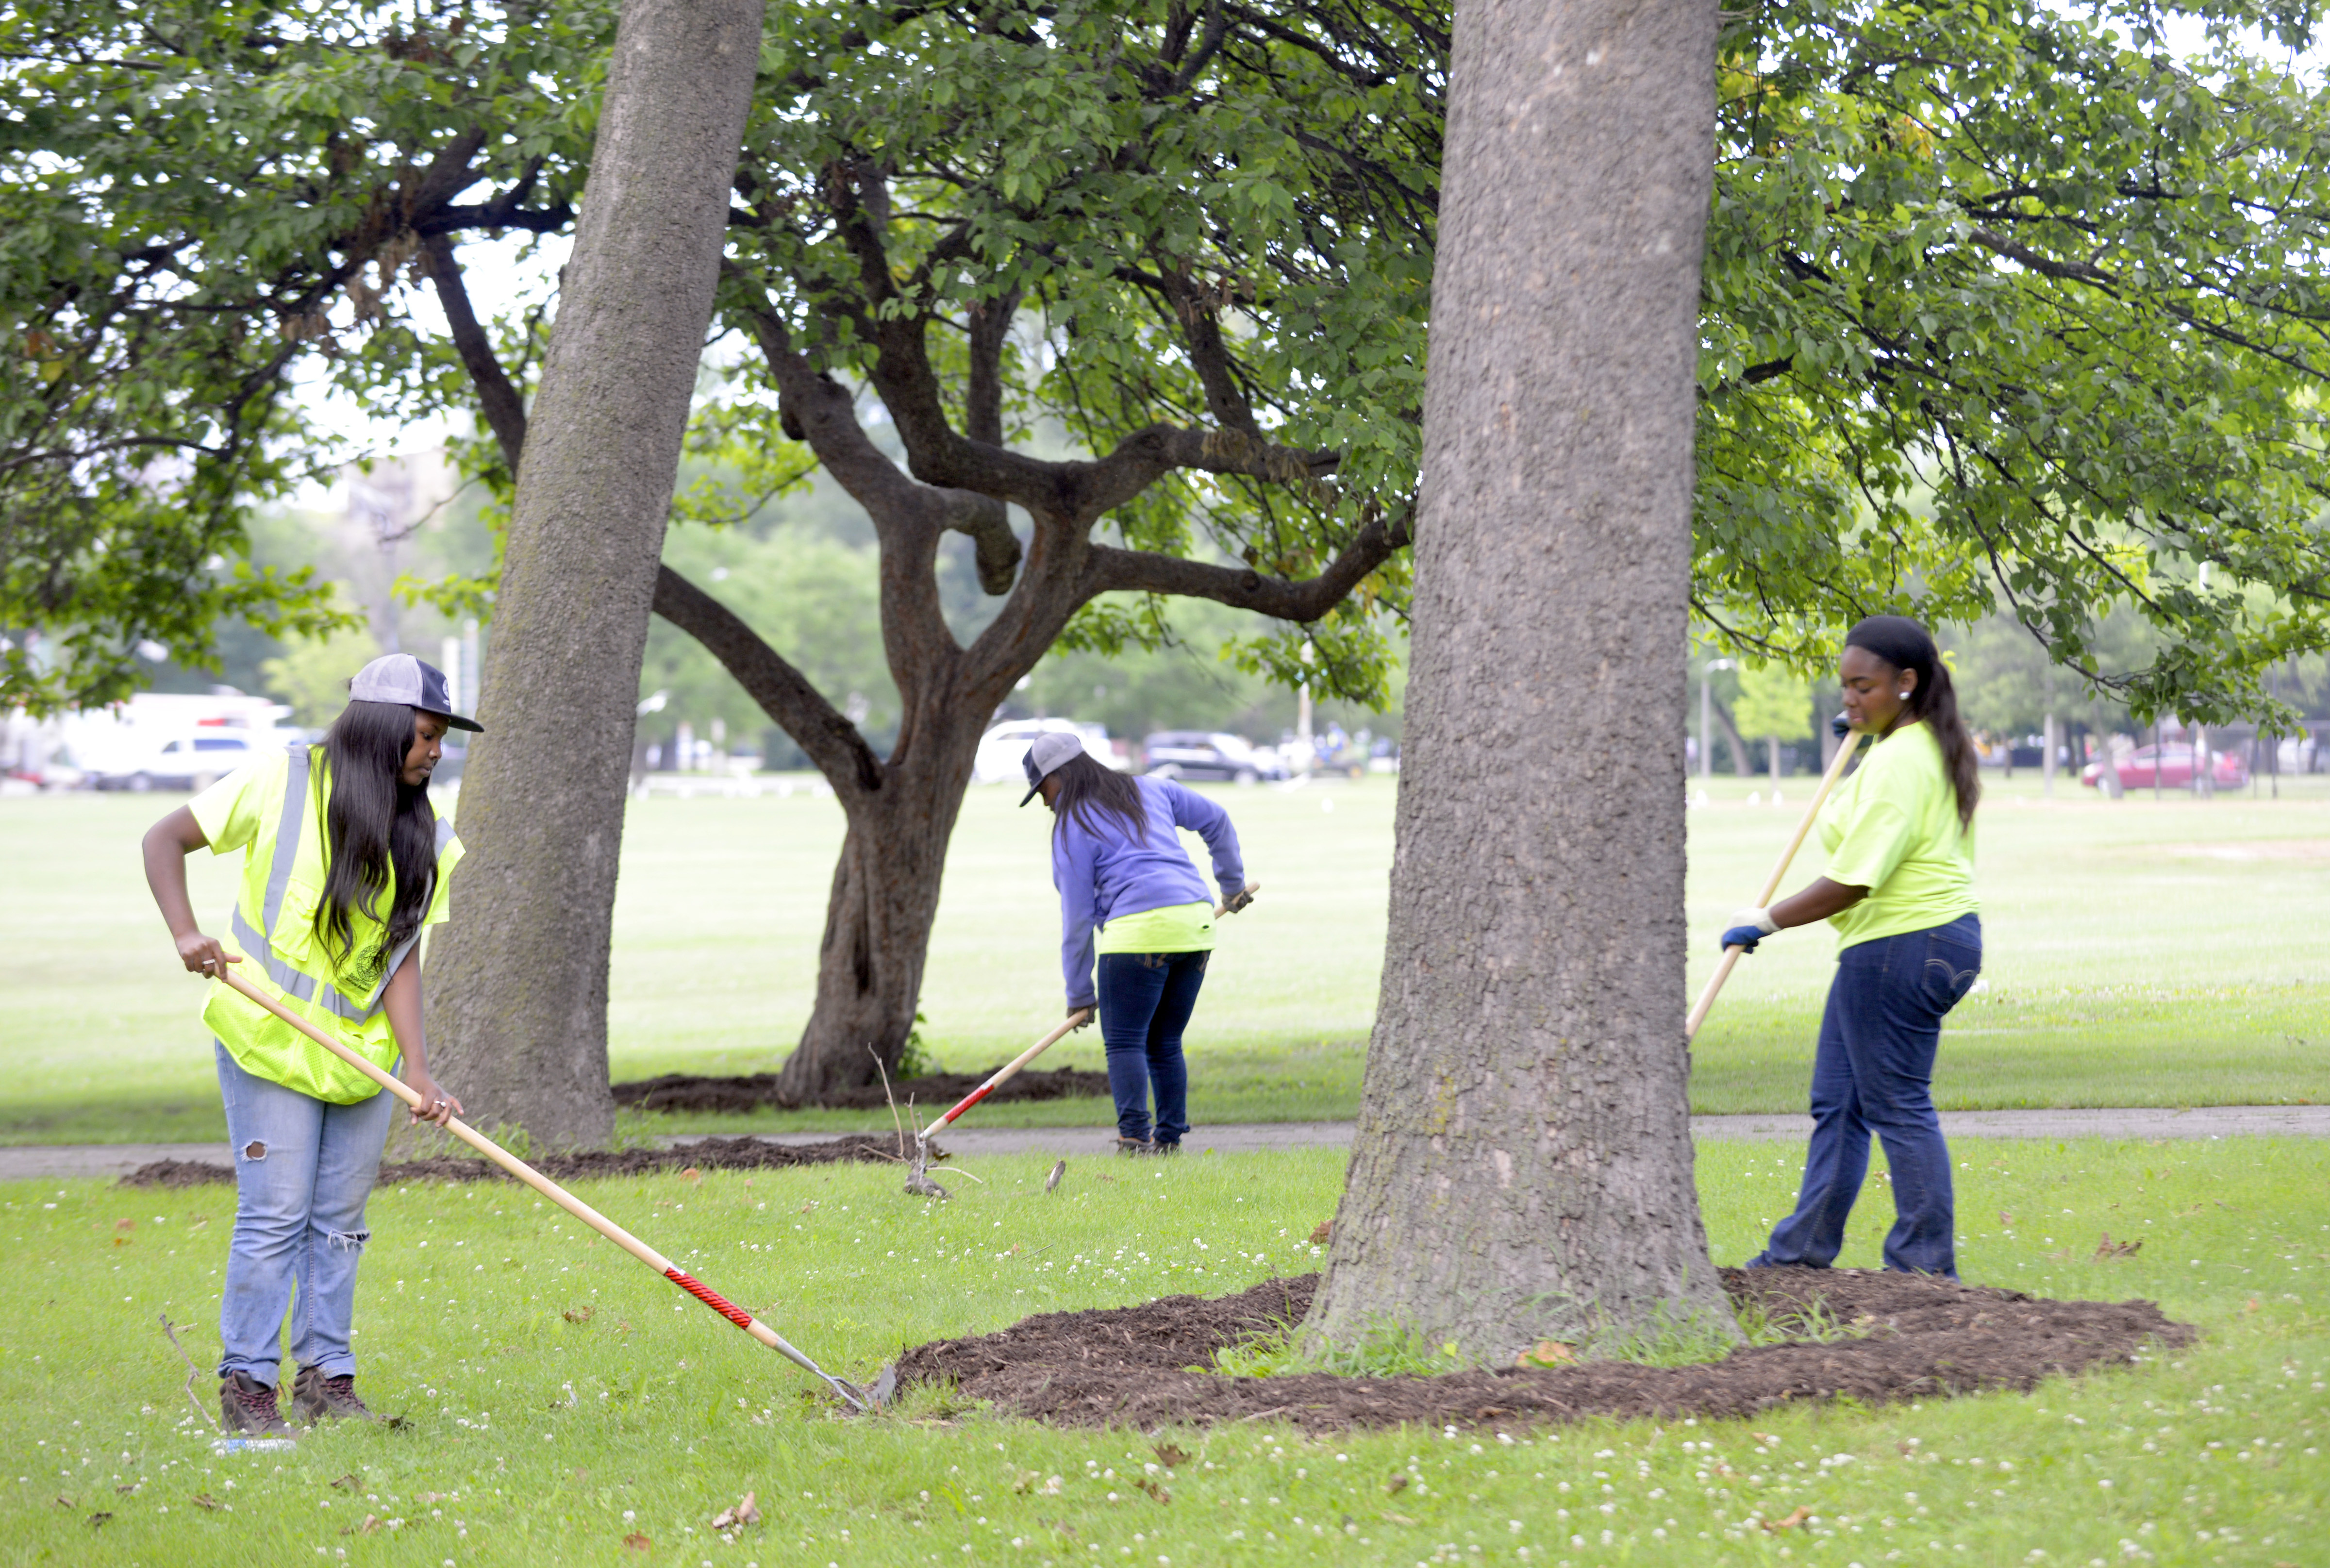 Many Chicago Park District summer jobs are going unfilled because not enough people have applied, city officials say.